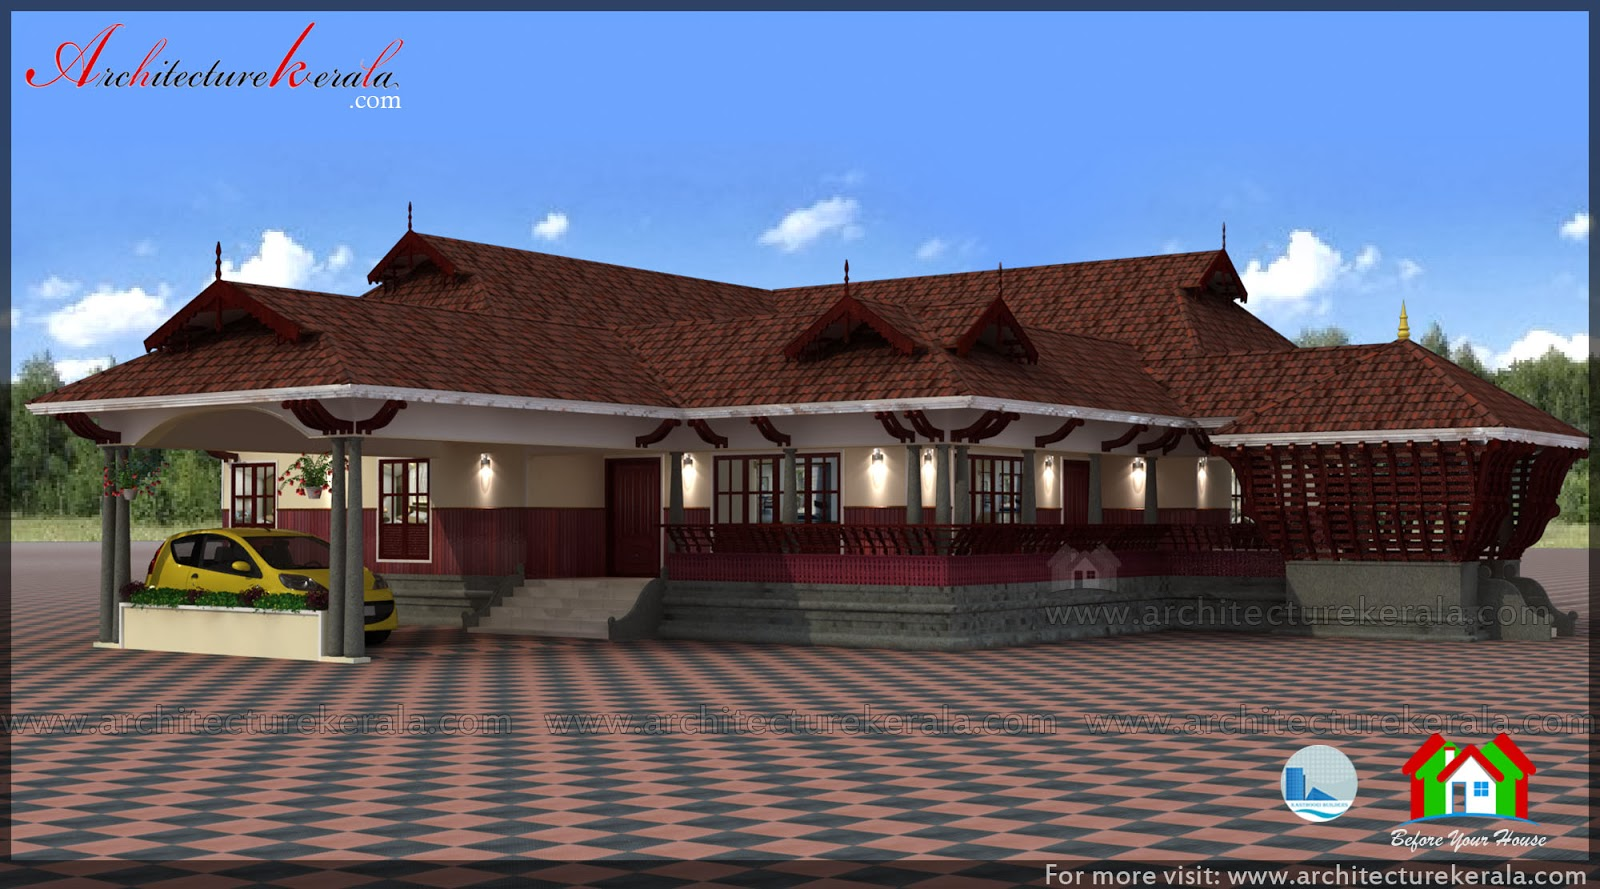 3 Bedroom Tradition Kerala Home With Nadumuttam Part - 22: TRADITIONAL HOUSE PLAN WITH NADUMUTTAM AND POOMUKHAM